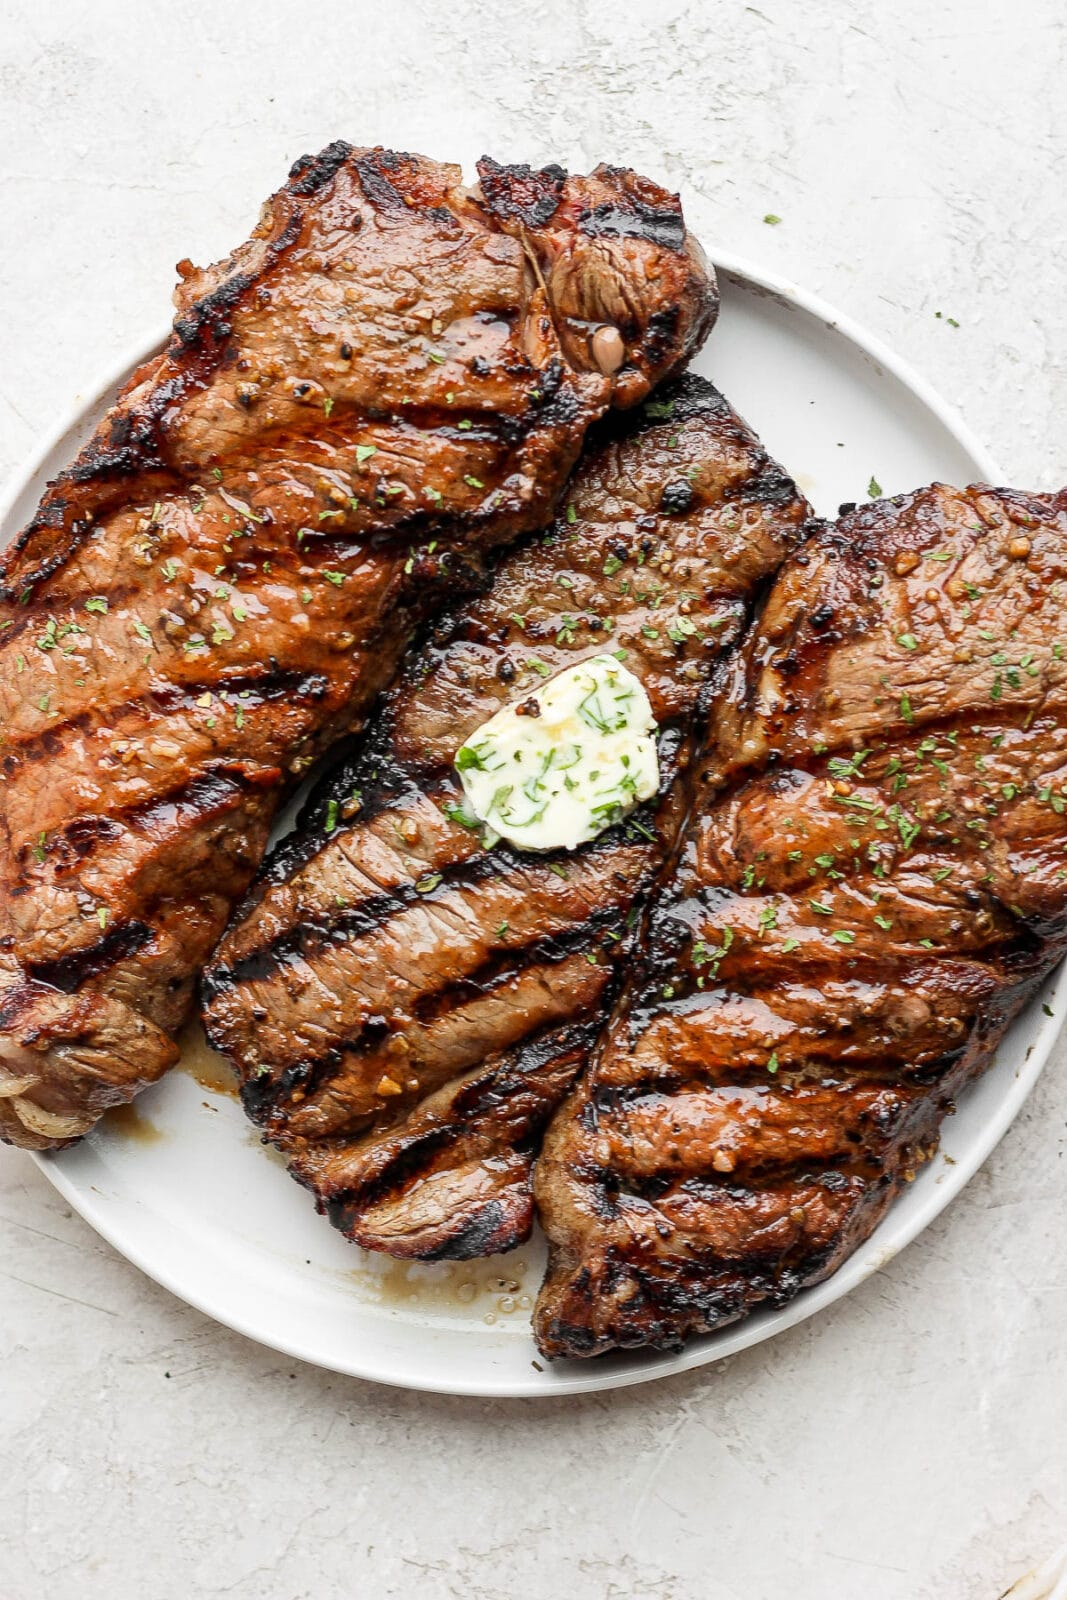 Three steaks on a plate, grilled with grill marks, and herbed butter on the middle one.